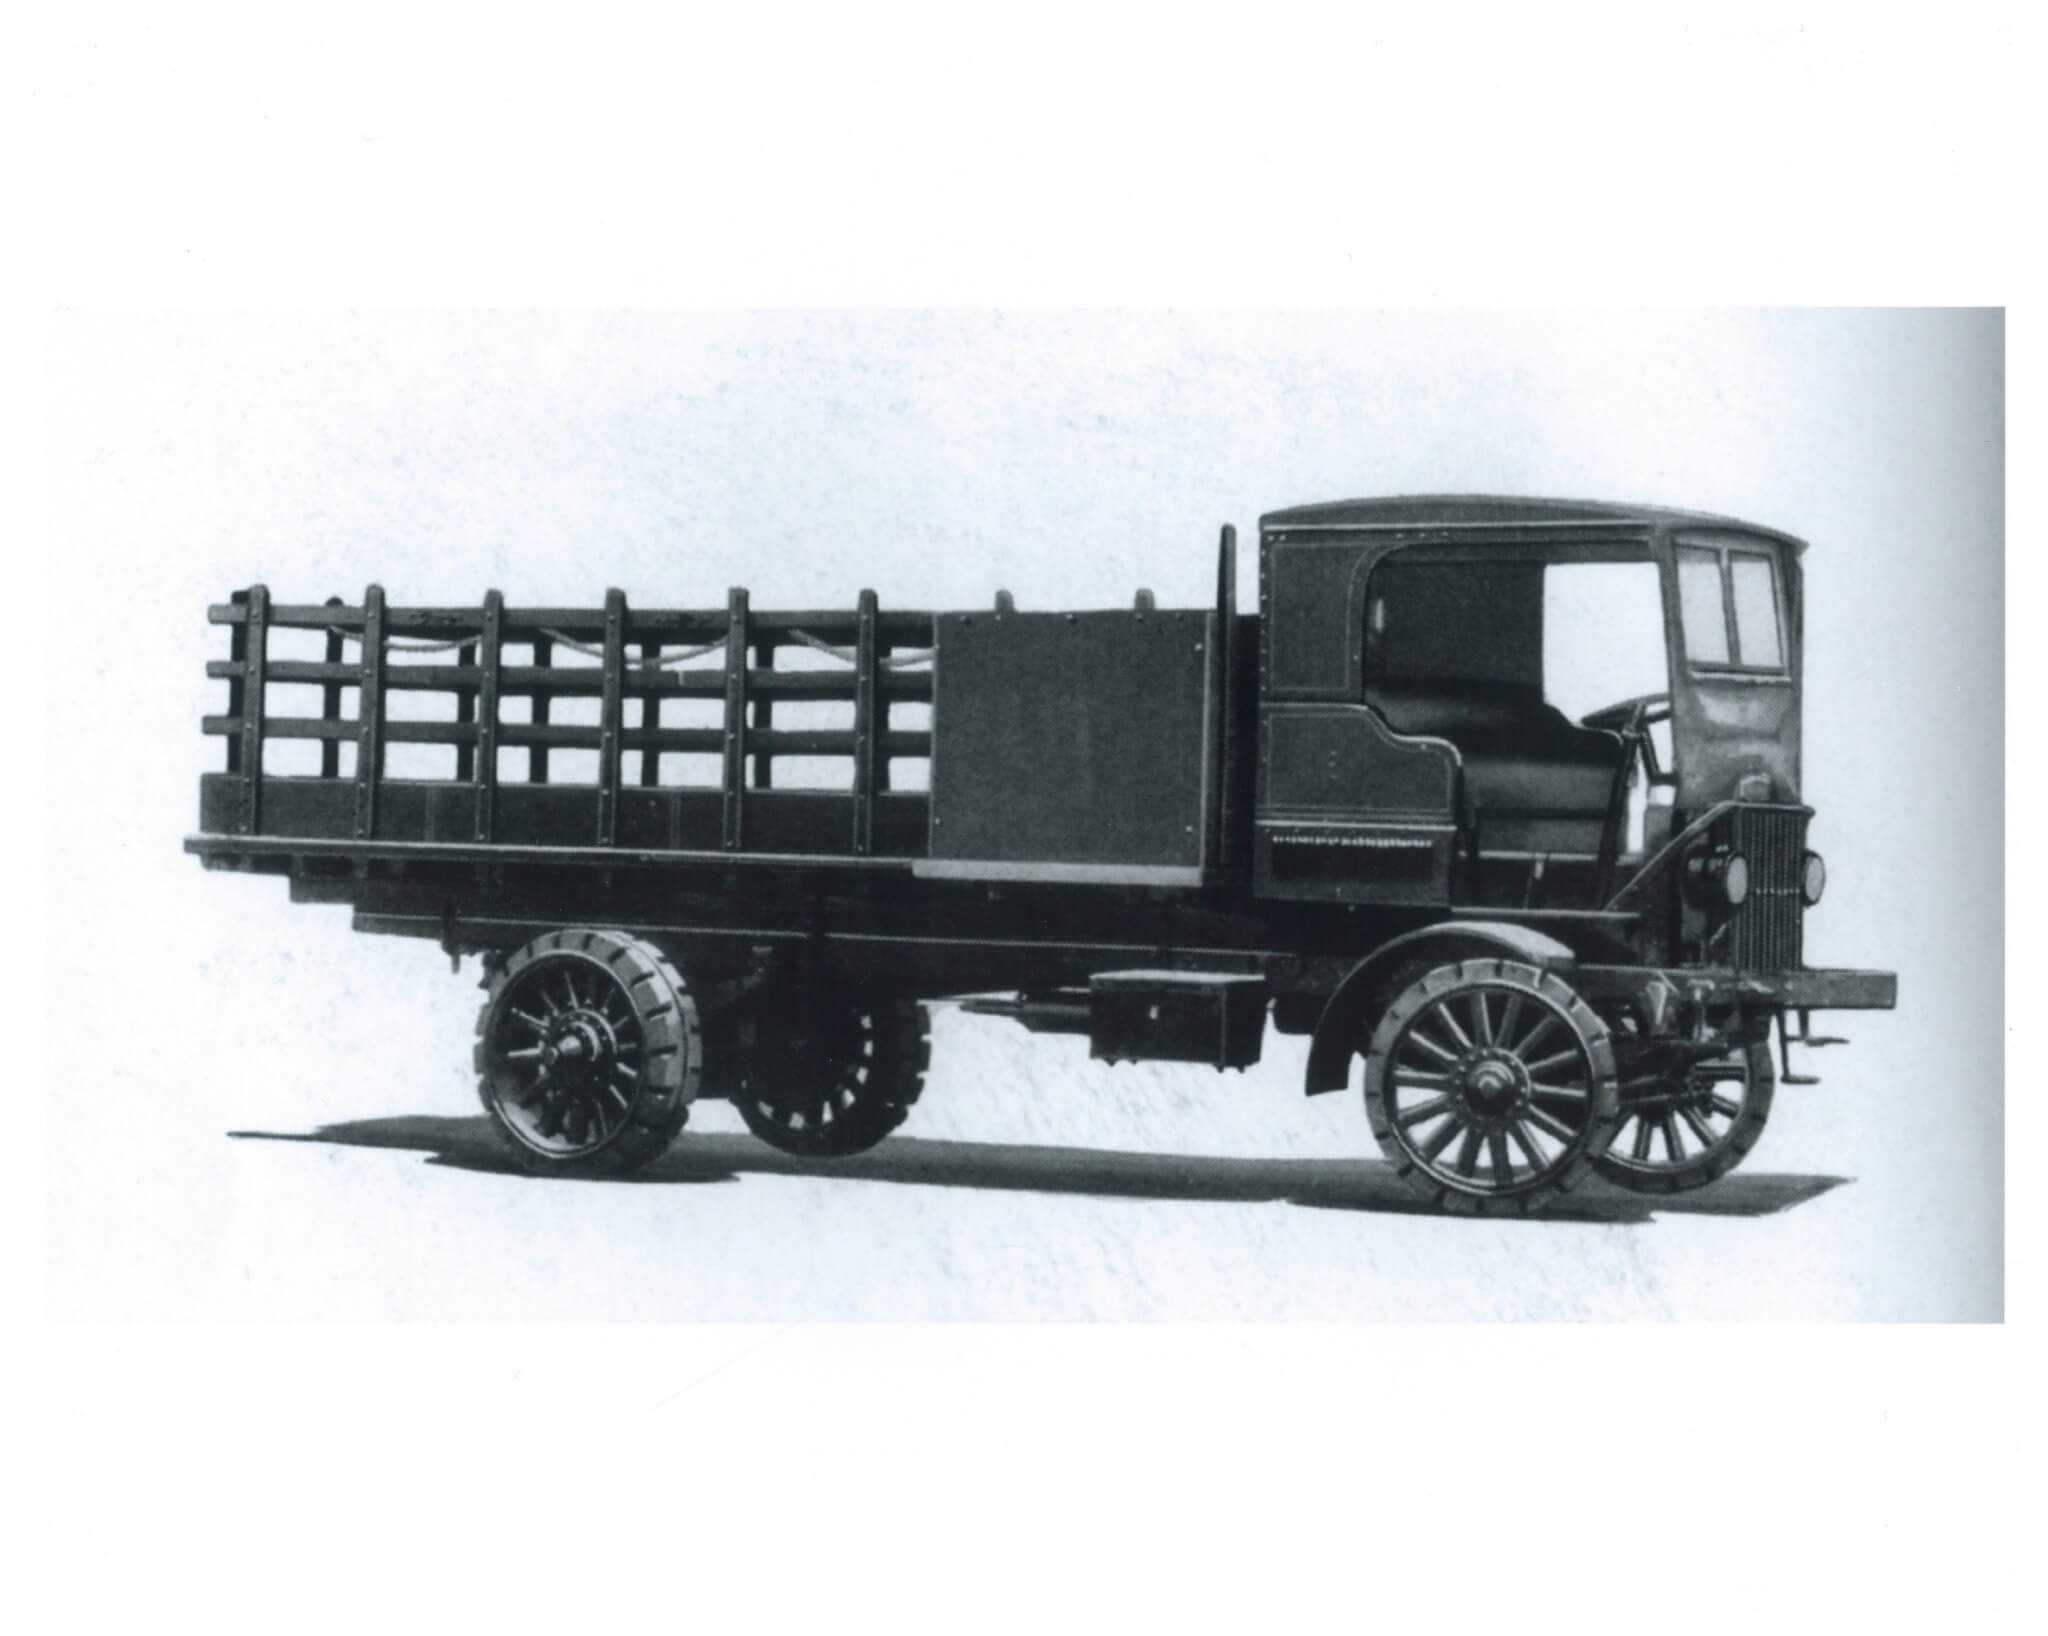 The firm's fifth-year offering of their Type XXVIL platform. Introduced in 1920, this platform was offered in 2- and 5-ton versions as shown here. Units were powered by initially by inline four-cylinder mills, six-cylinder powerplants were added for greater GVW and chassis length. Autocar was a leader in popular cab-over production.